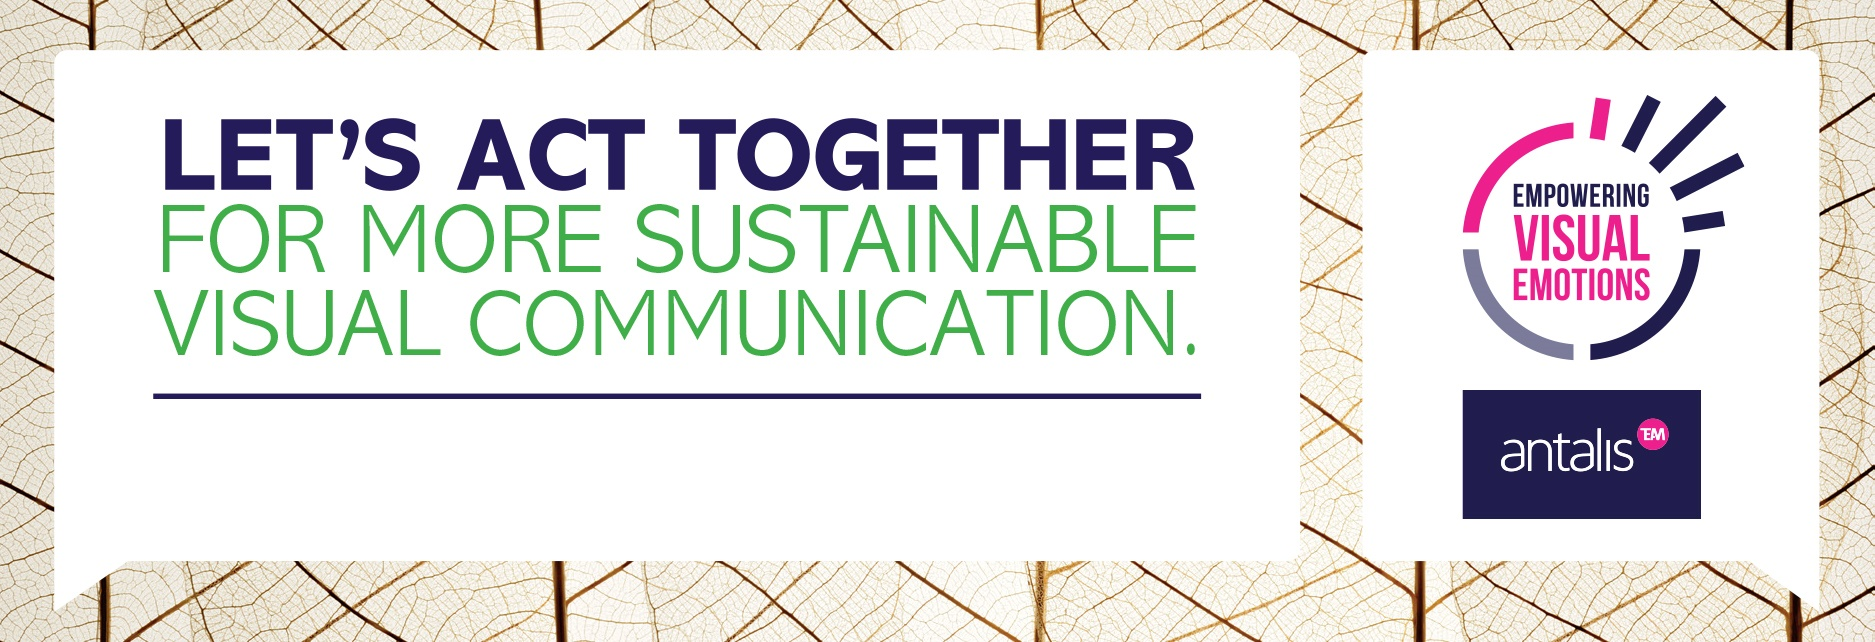 Antalis launches its global initiative for a more sustainable visual communication industry